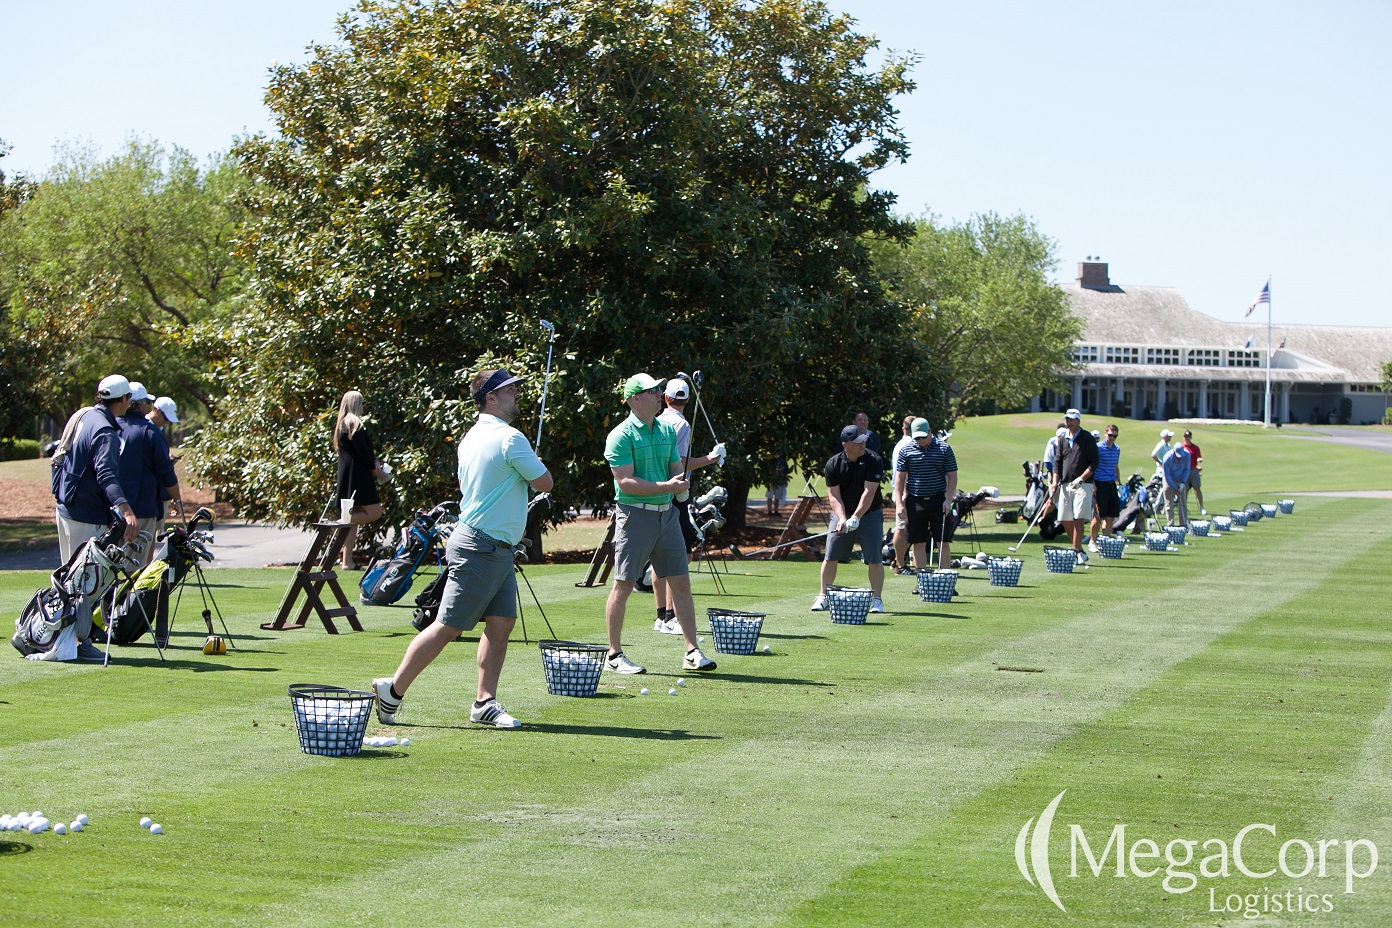 Baskets full of golf balls lining the green grass. A few men are hitting the golf balls and looking into the distance.